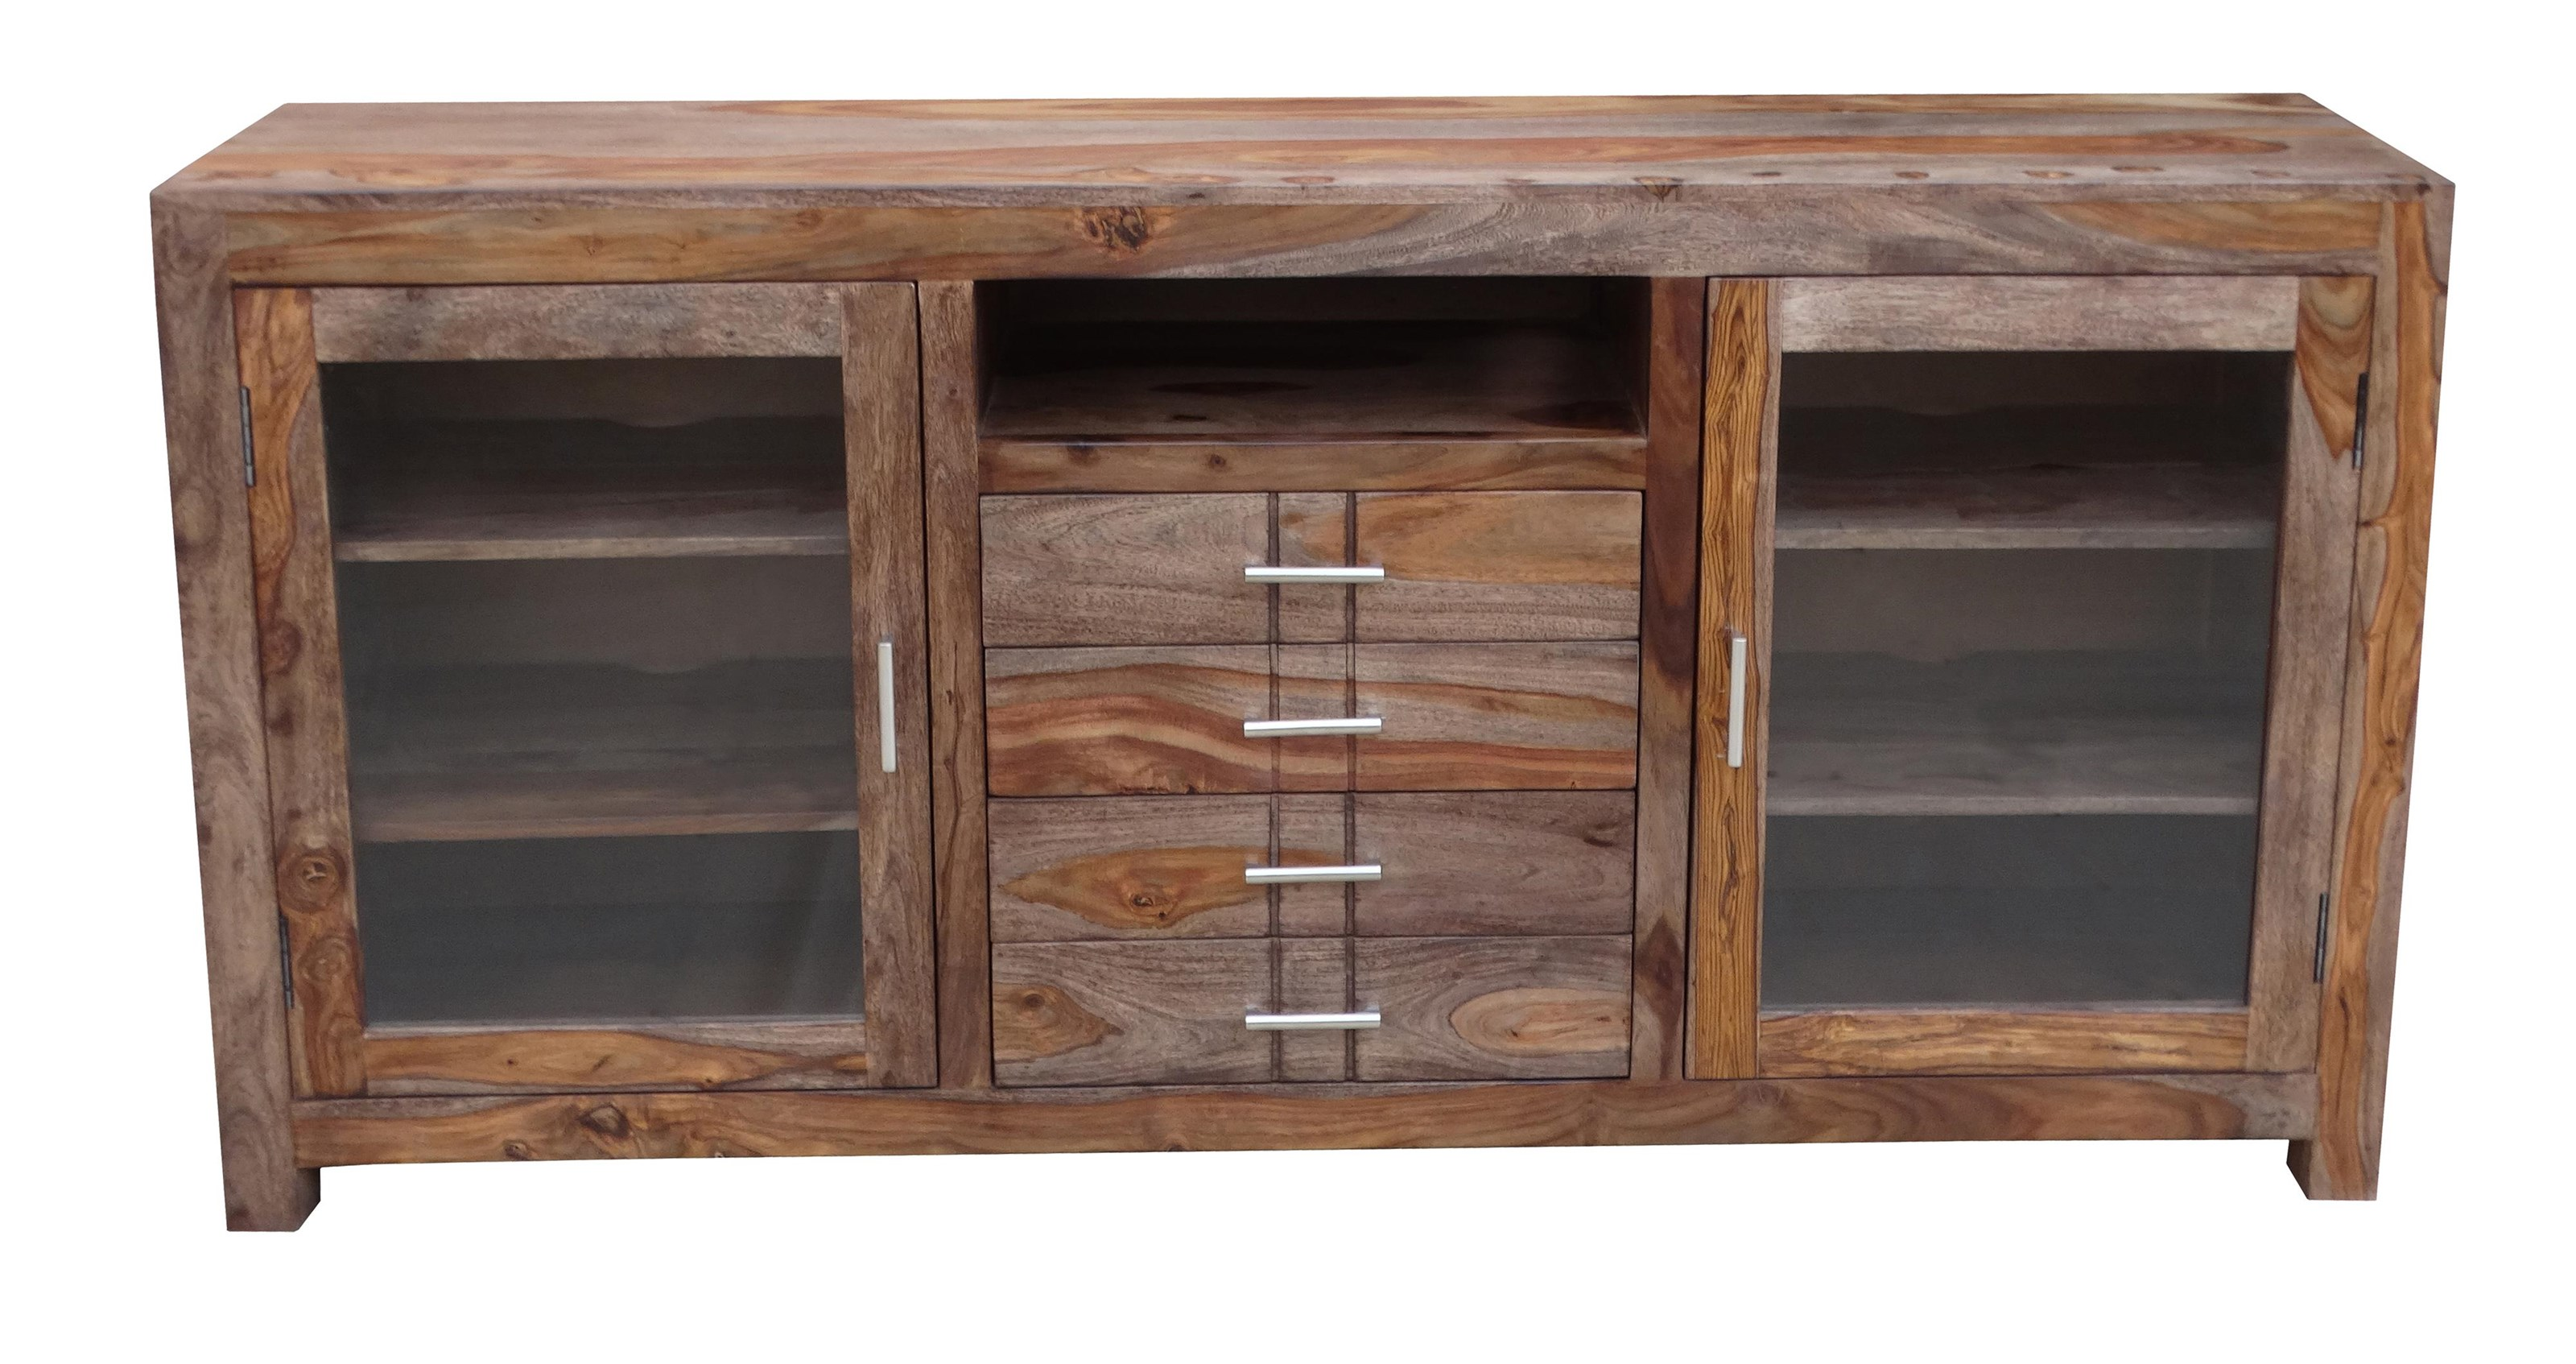 Accents 4-Drawer 2-Door Credenza by Coast to Coast Imports at Baer's Furniture